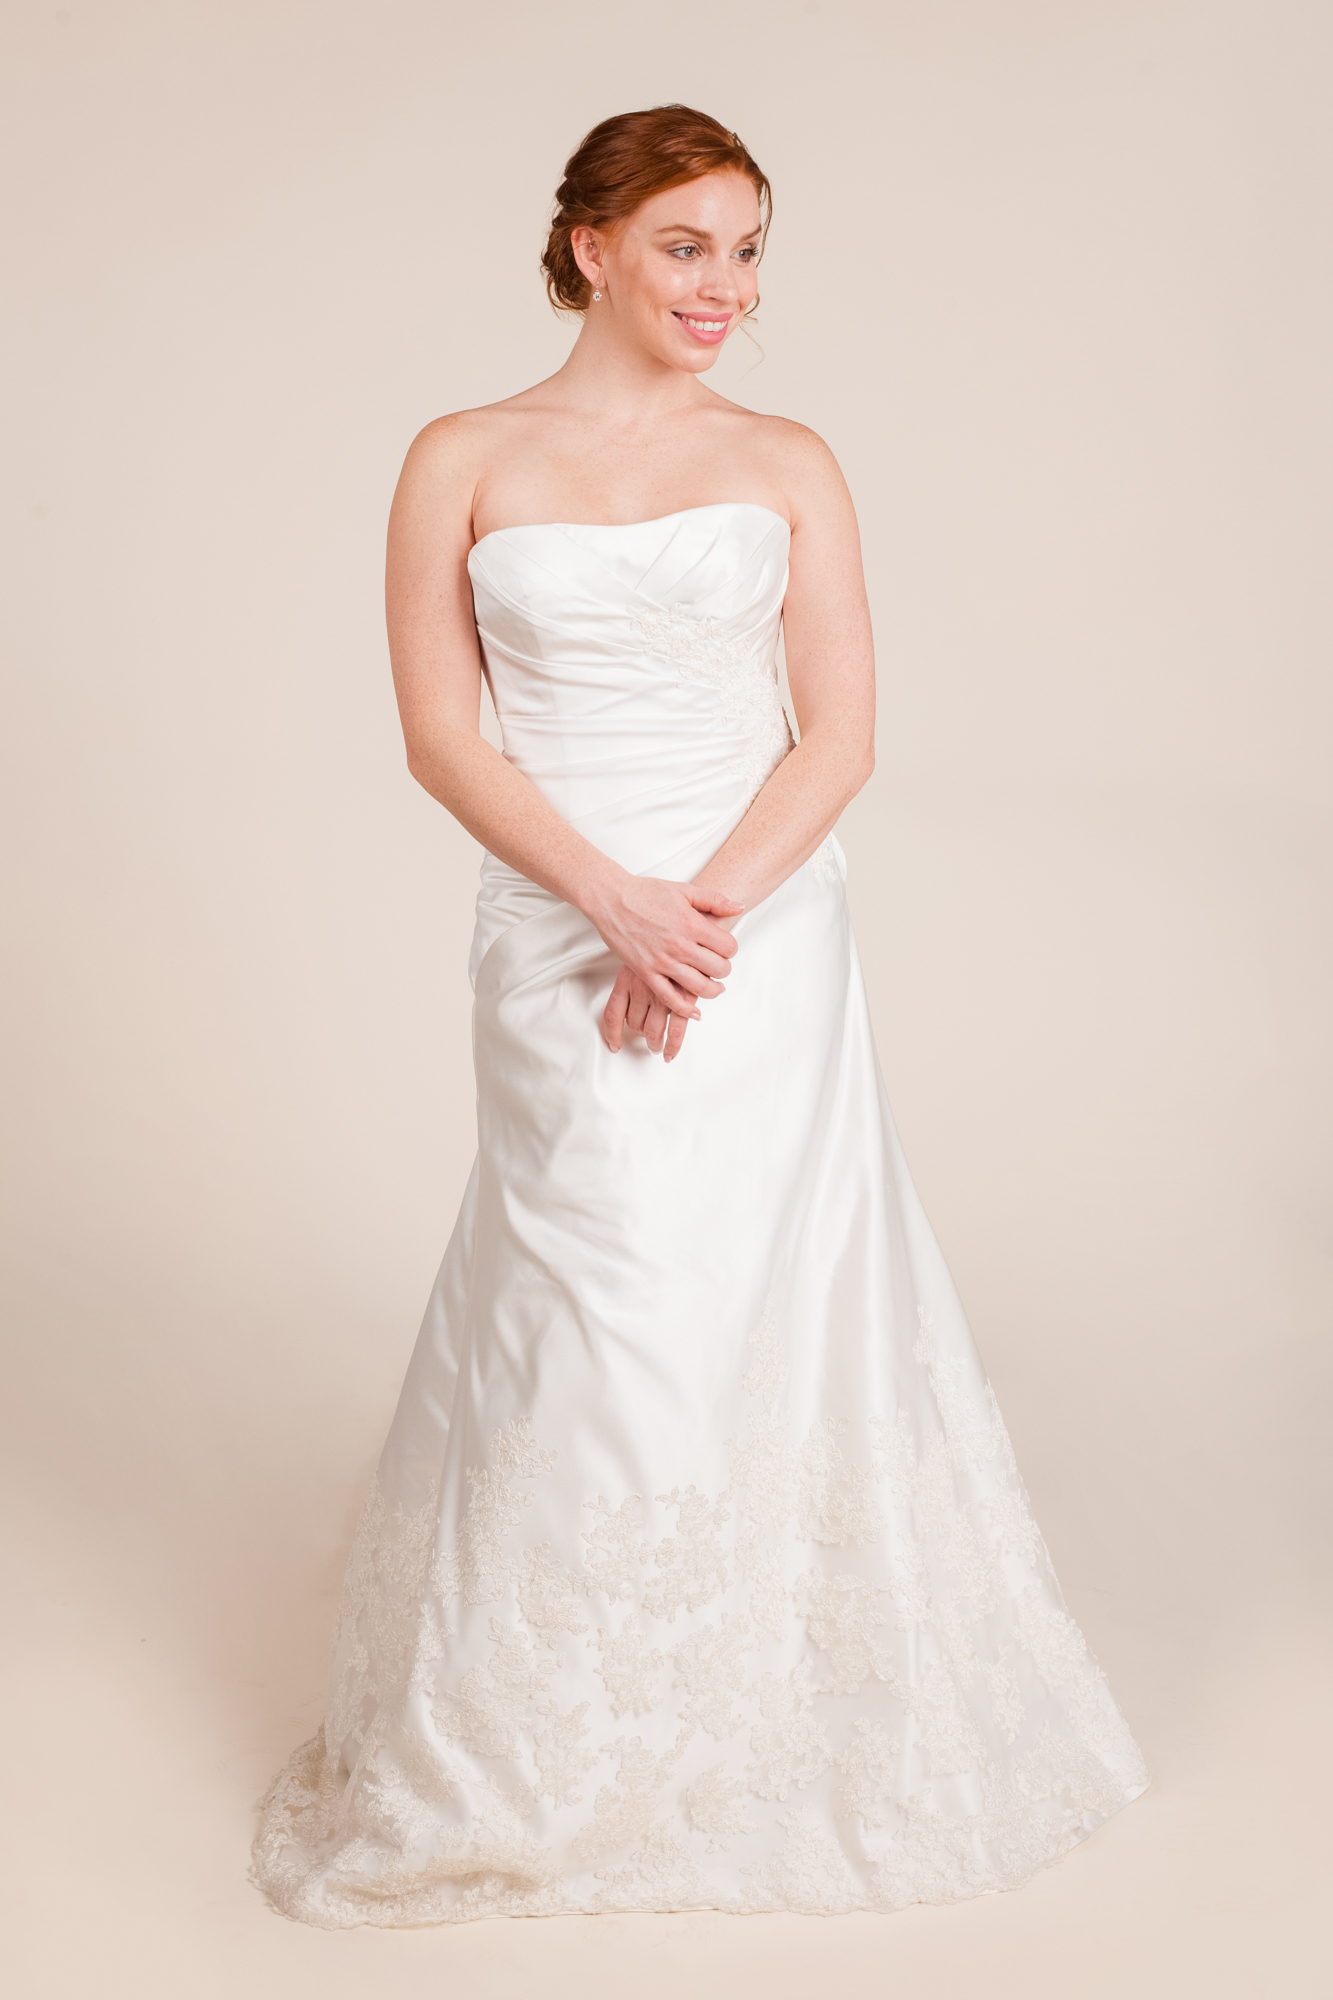 Allure bridals size 0 - $690 - (57% OFF)